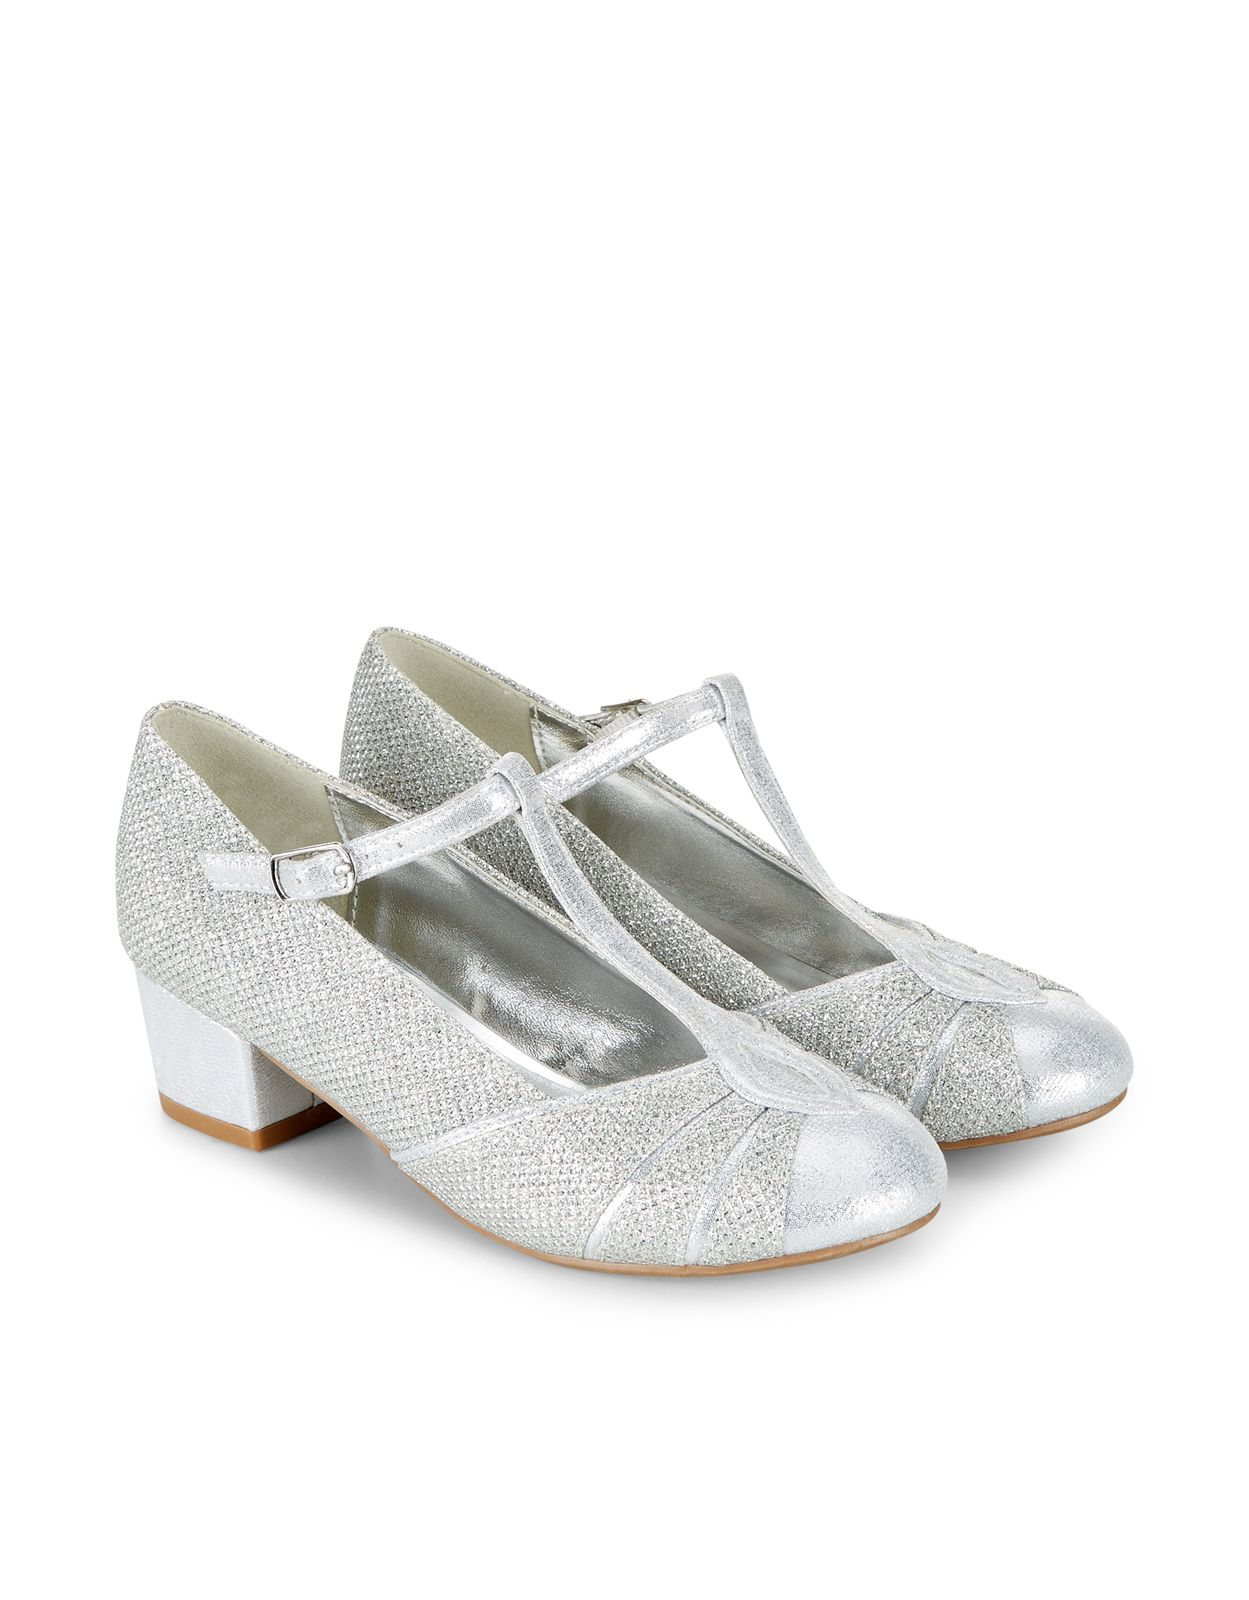 cf719f47b61 Perfect party outfits with these sparkly T-bar shoes for girls ...